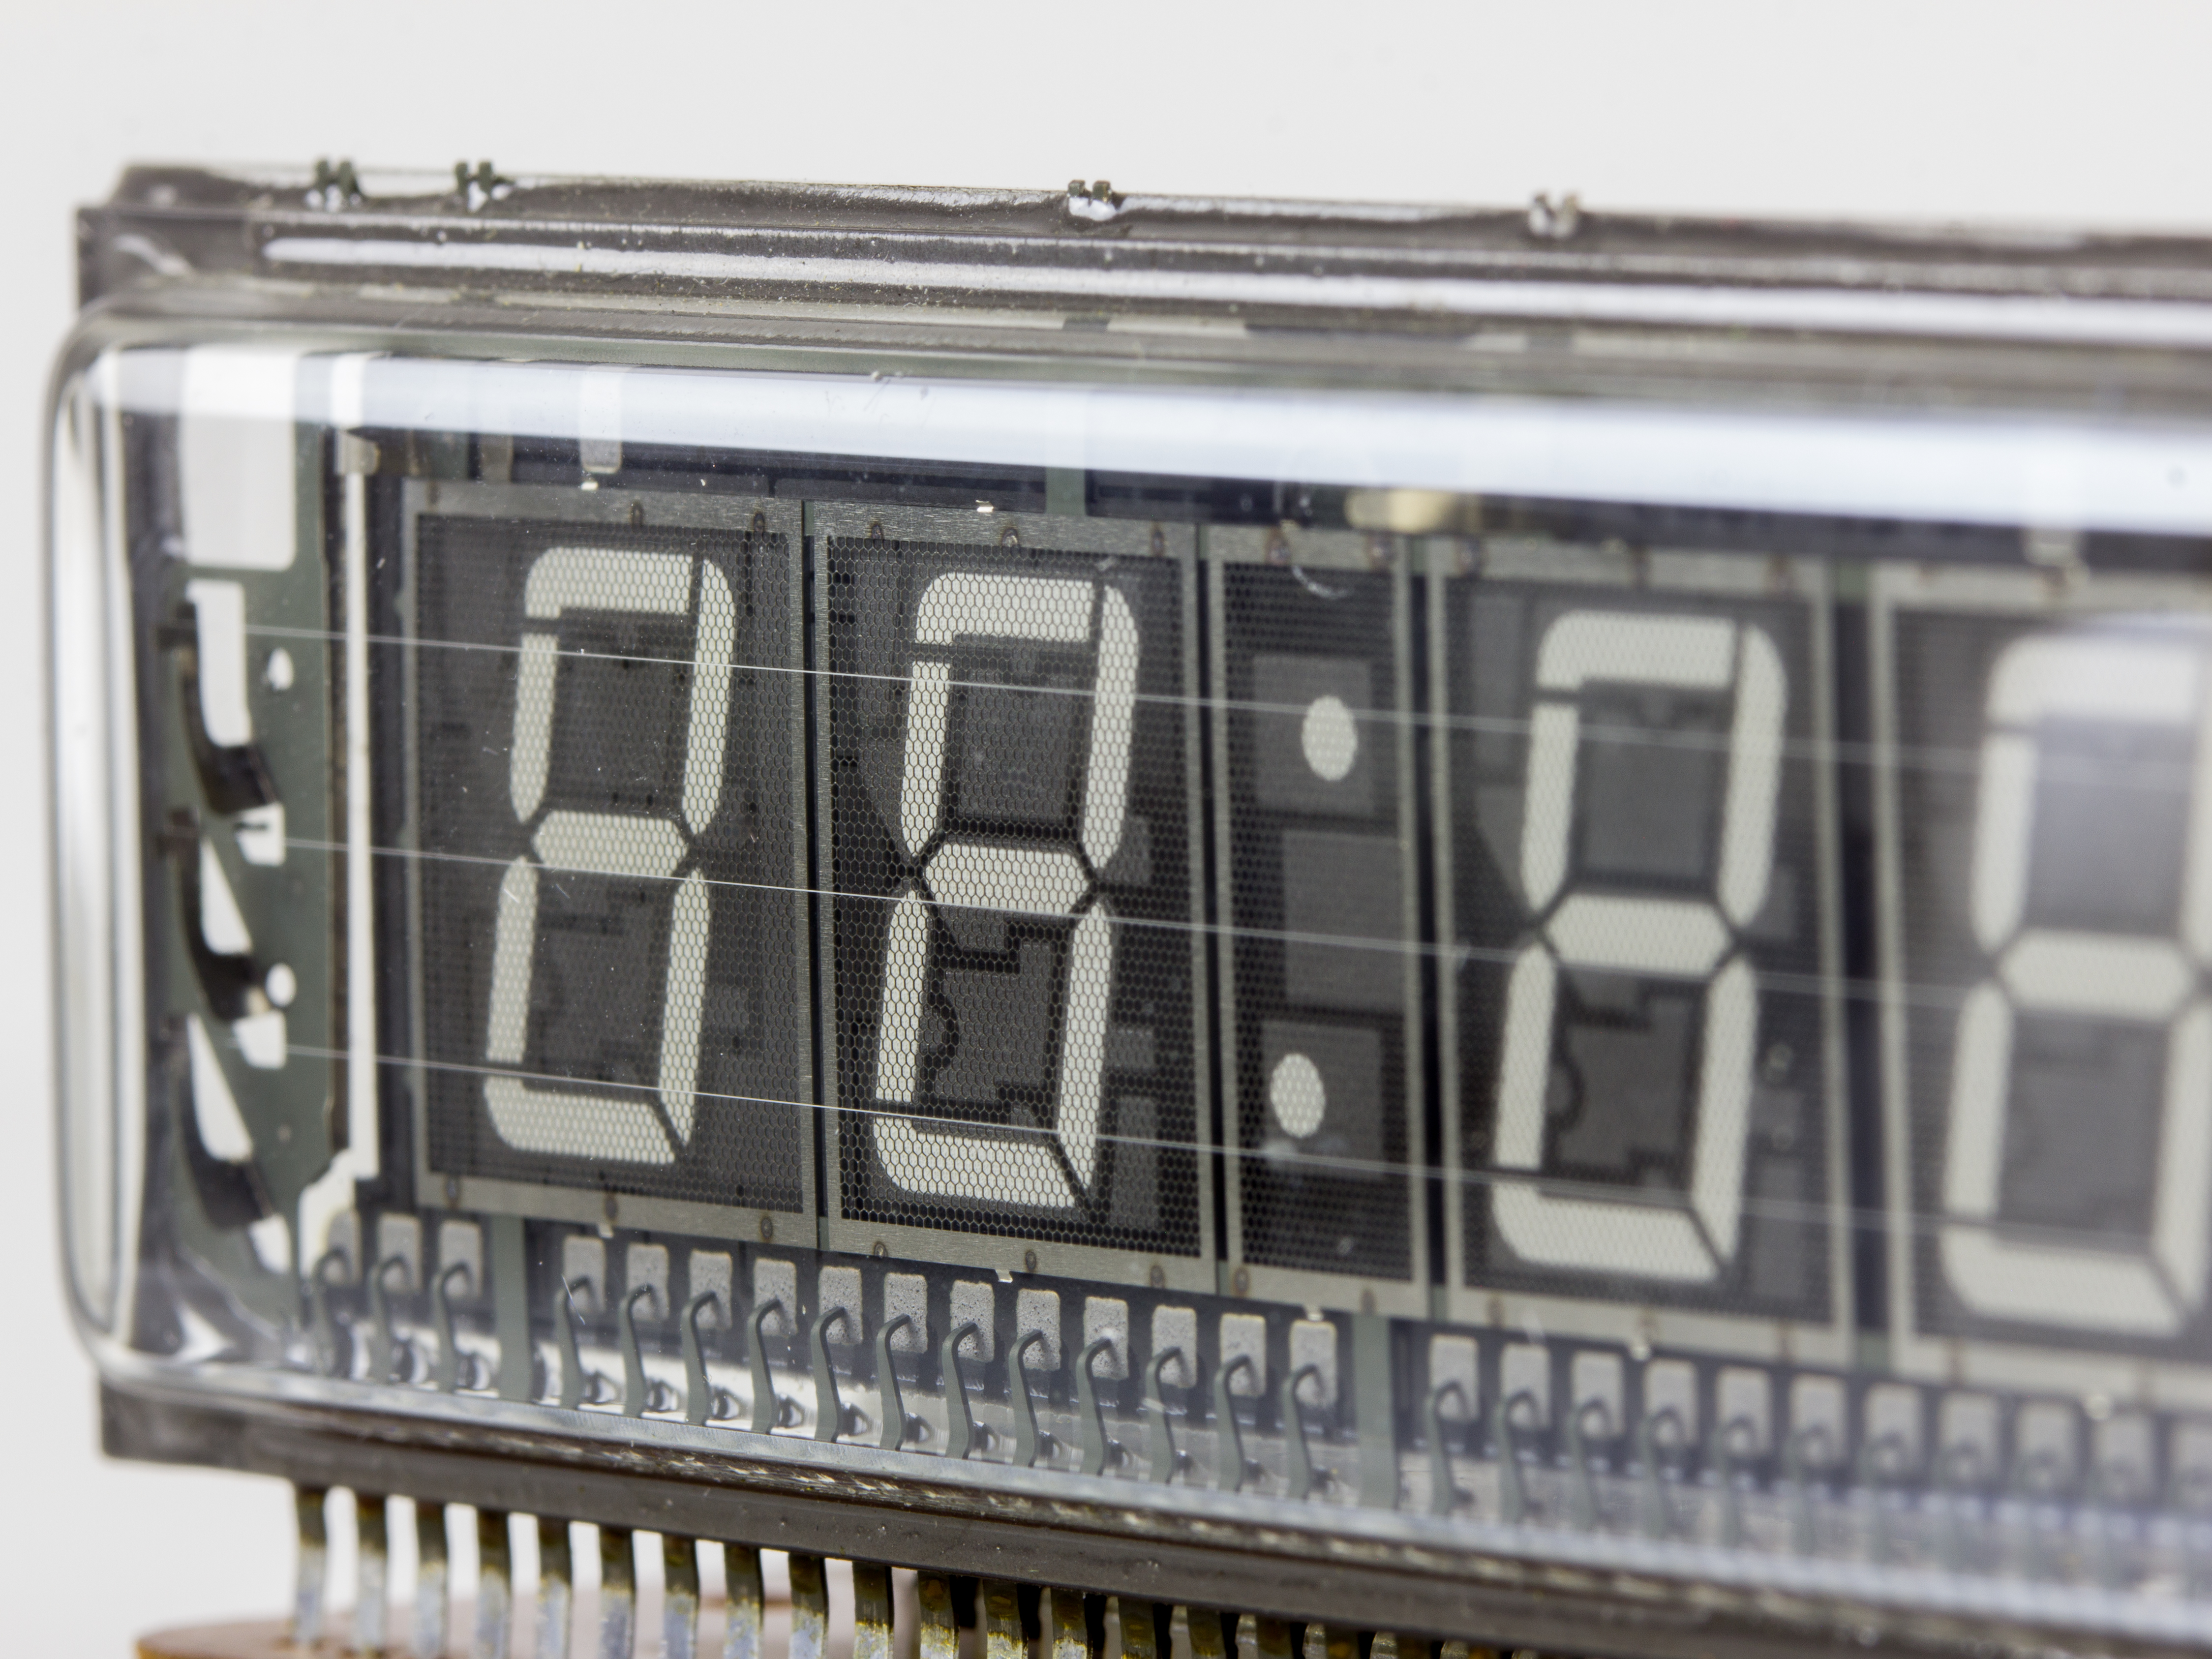 File:Meister-Anker Electronic Digital Uhr - Futaba vacuum fluorescent  display-2184.